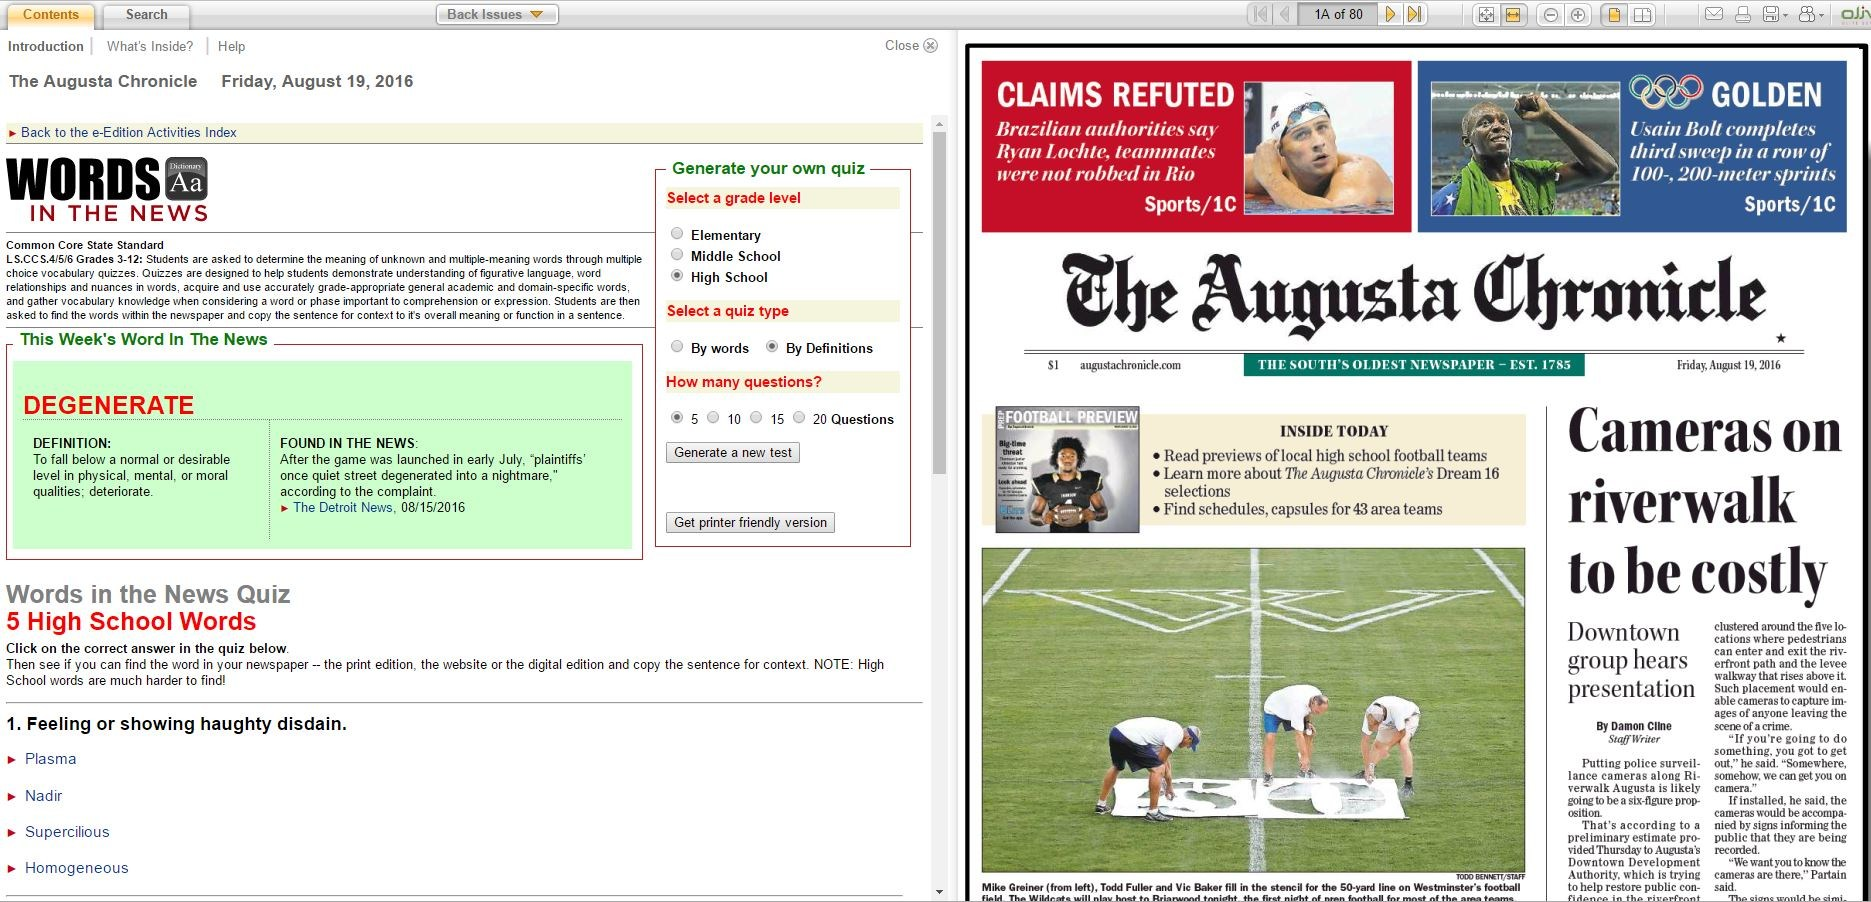 Picture of an online newspaper